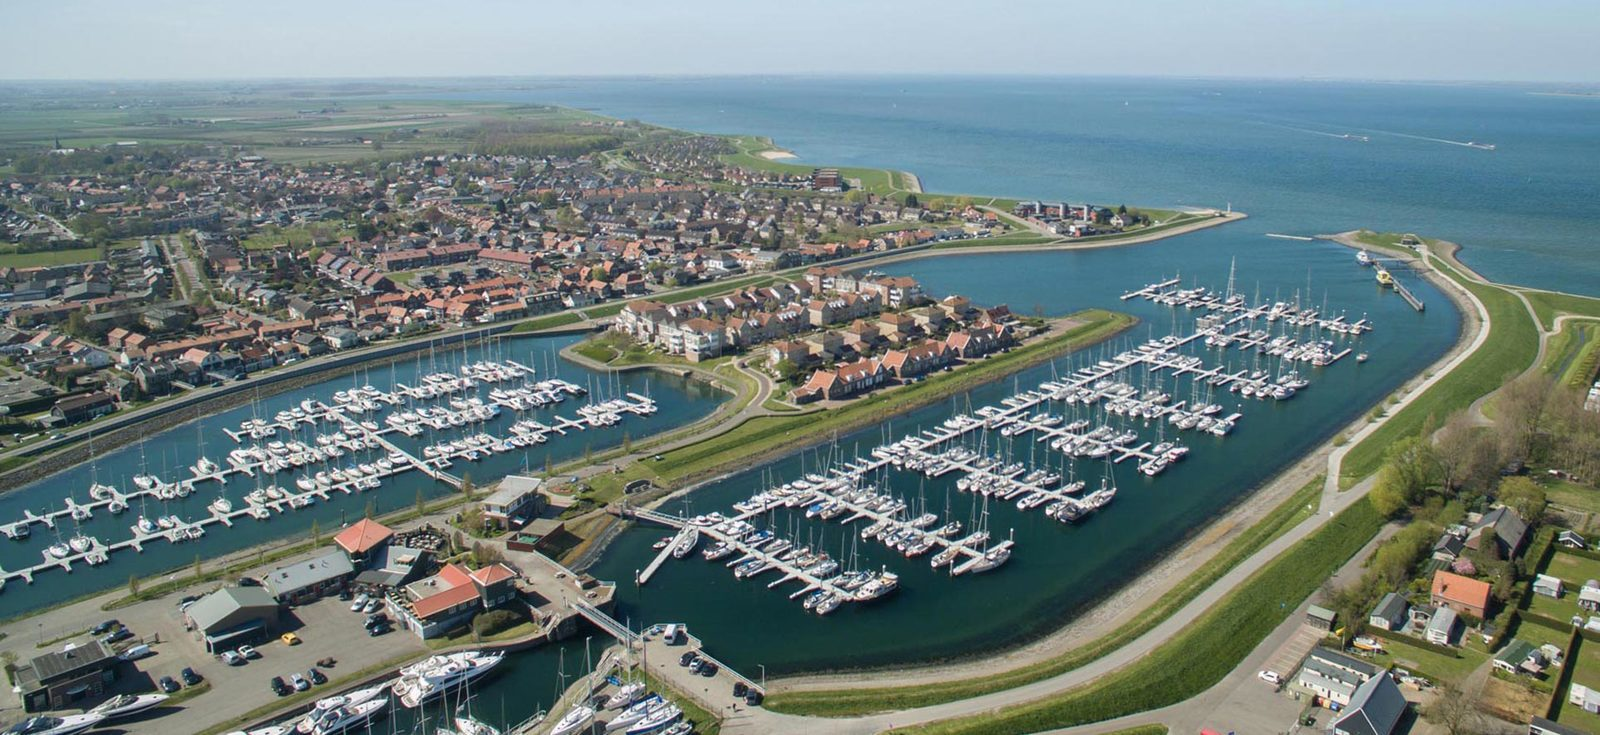 Water Resort Oosterscheldepark